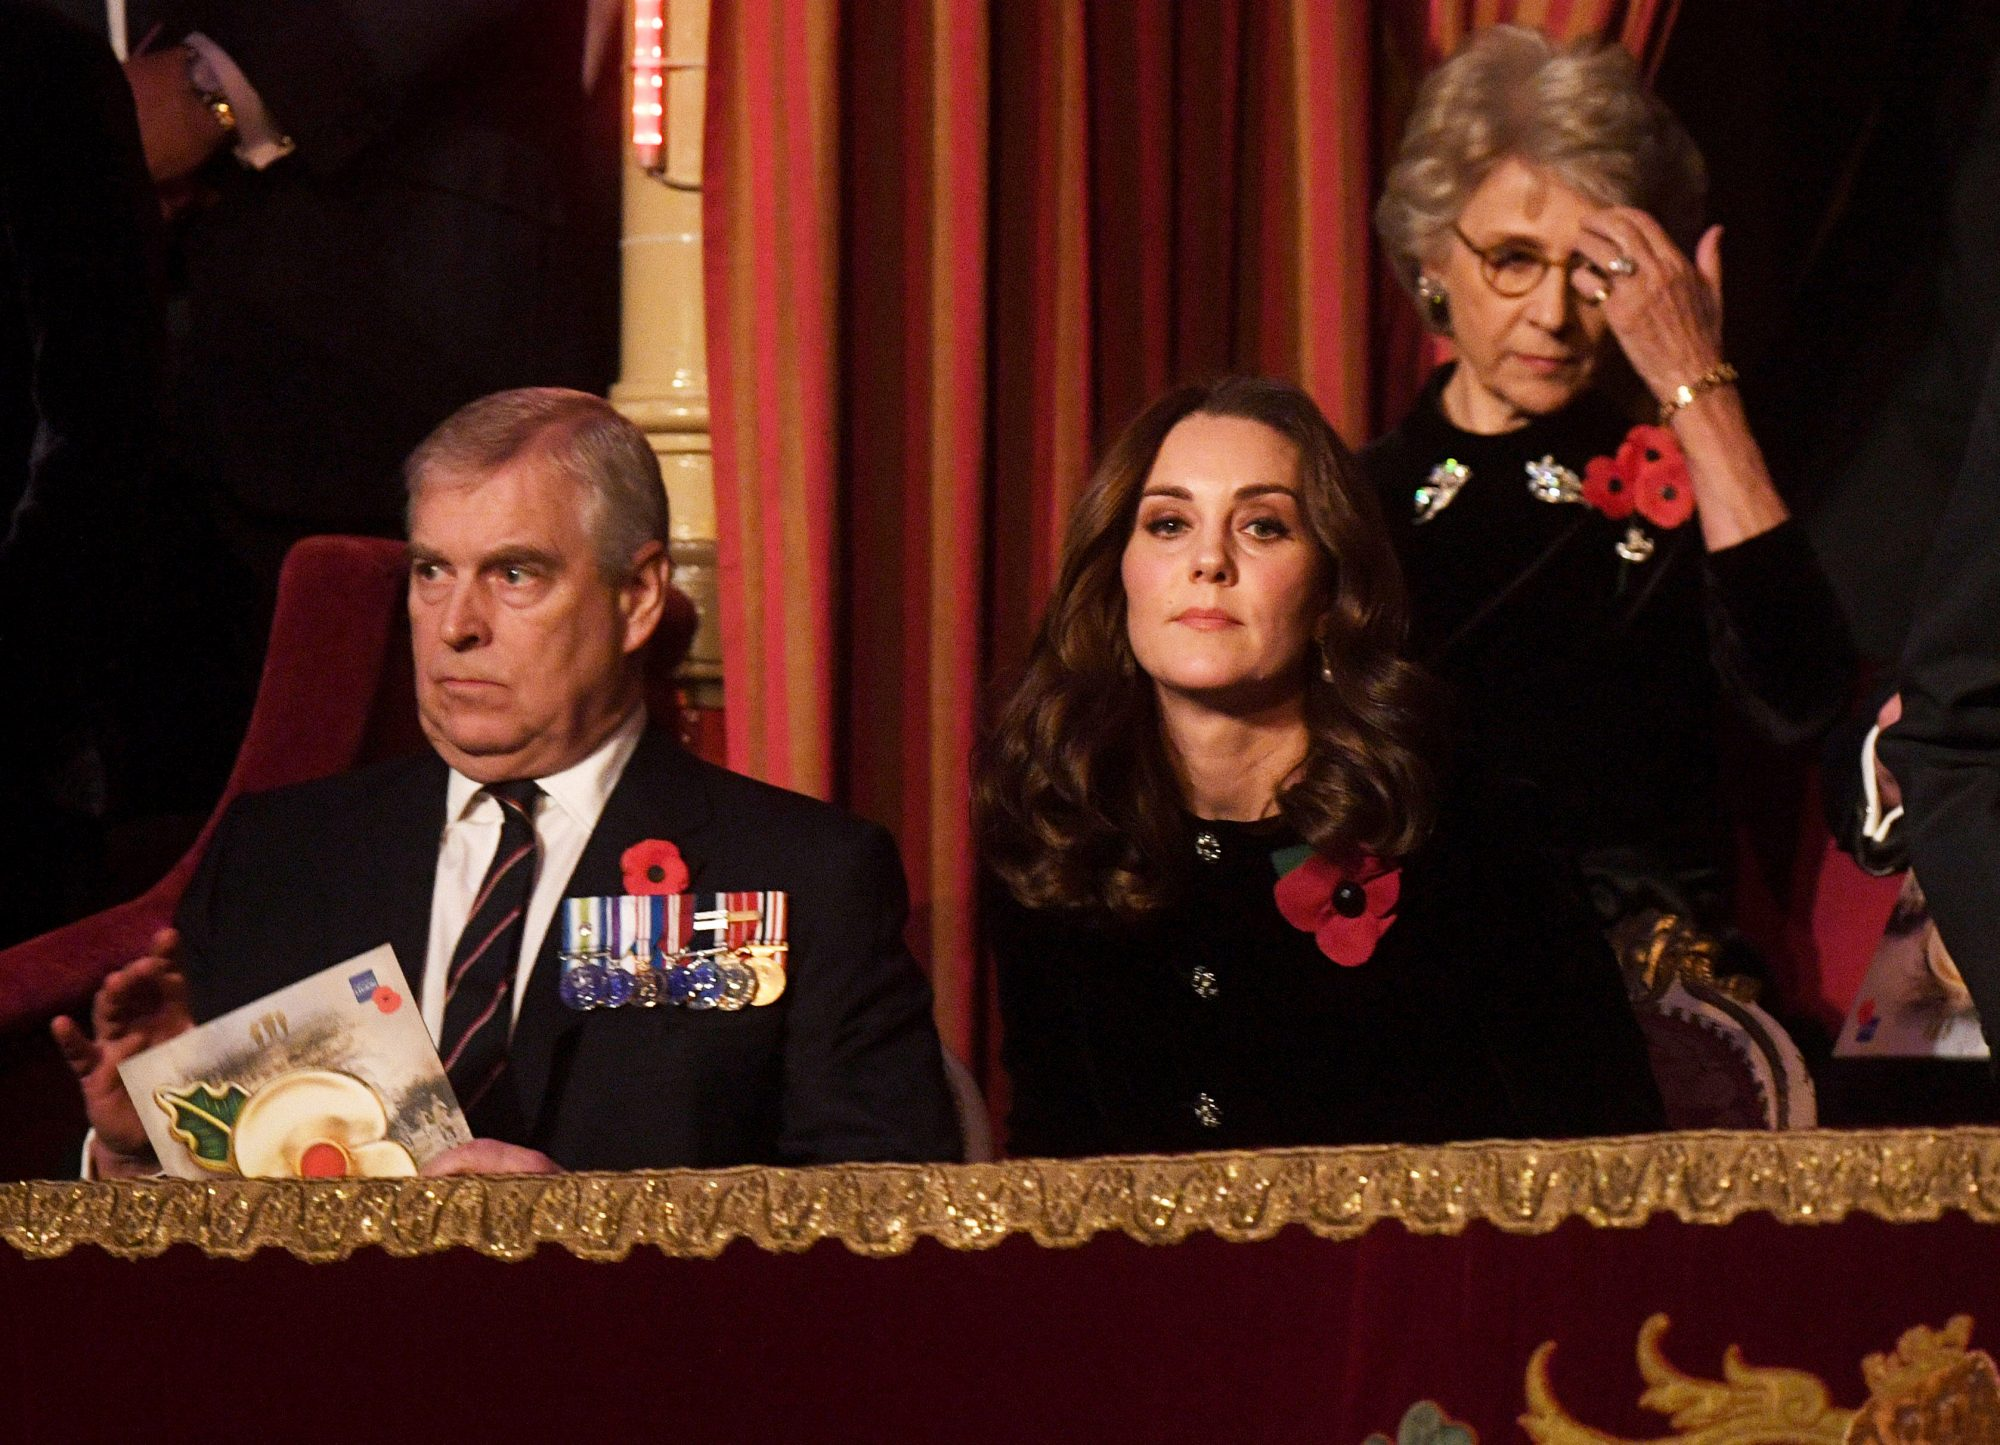 Kate Middleton Joins Queen Elizabeth to Honor Fallen Soldiers at Festival of Remembrance